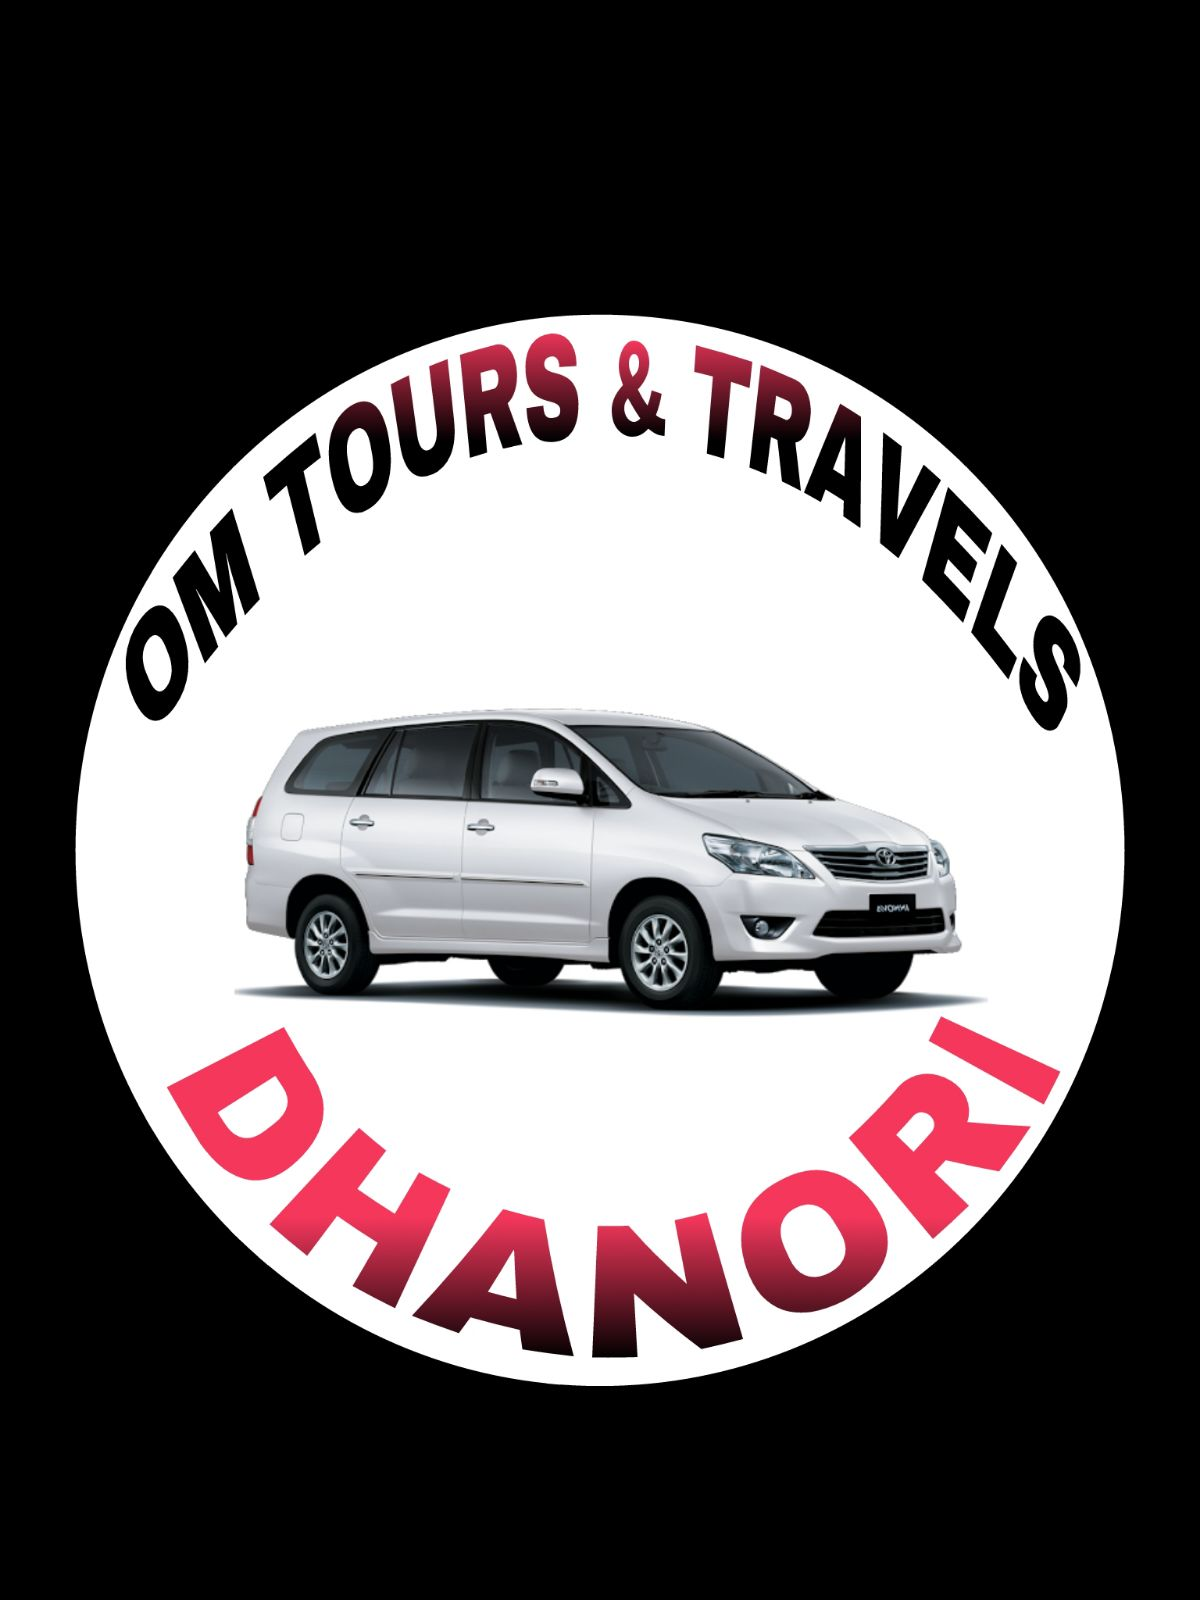 Om Tours and Travels